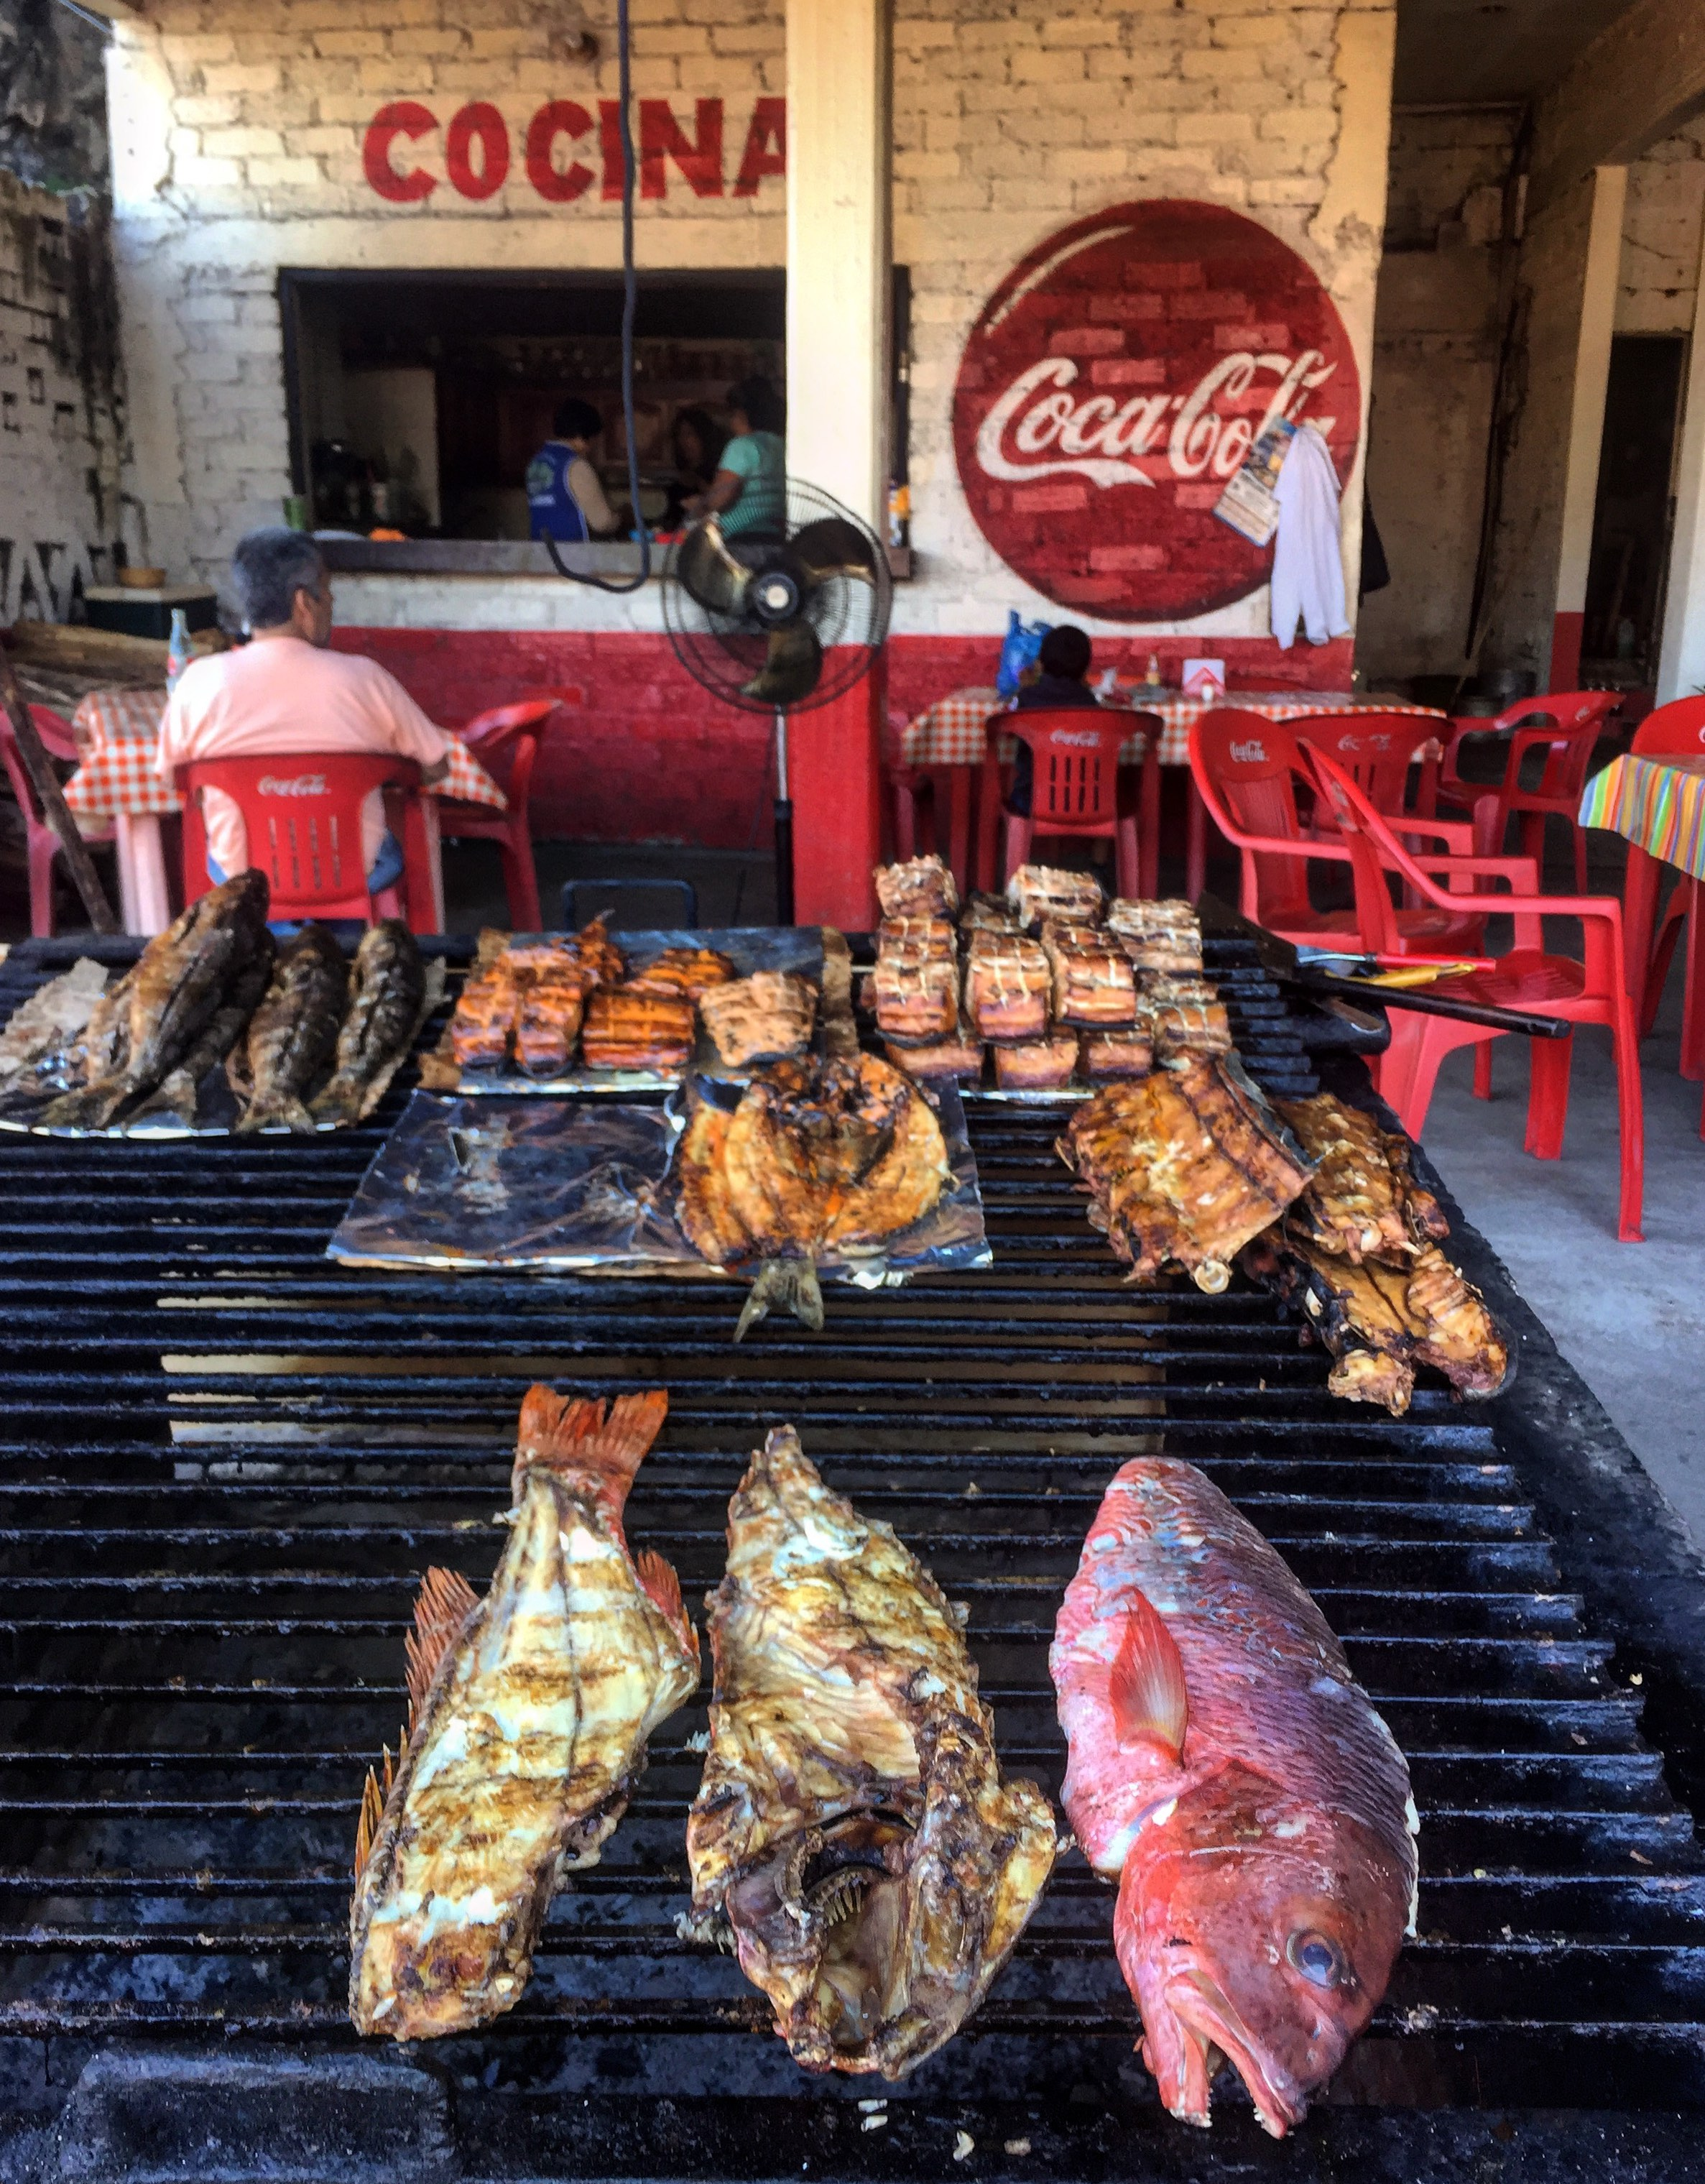 Typical lunch on the streets of San Blas.